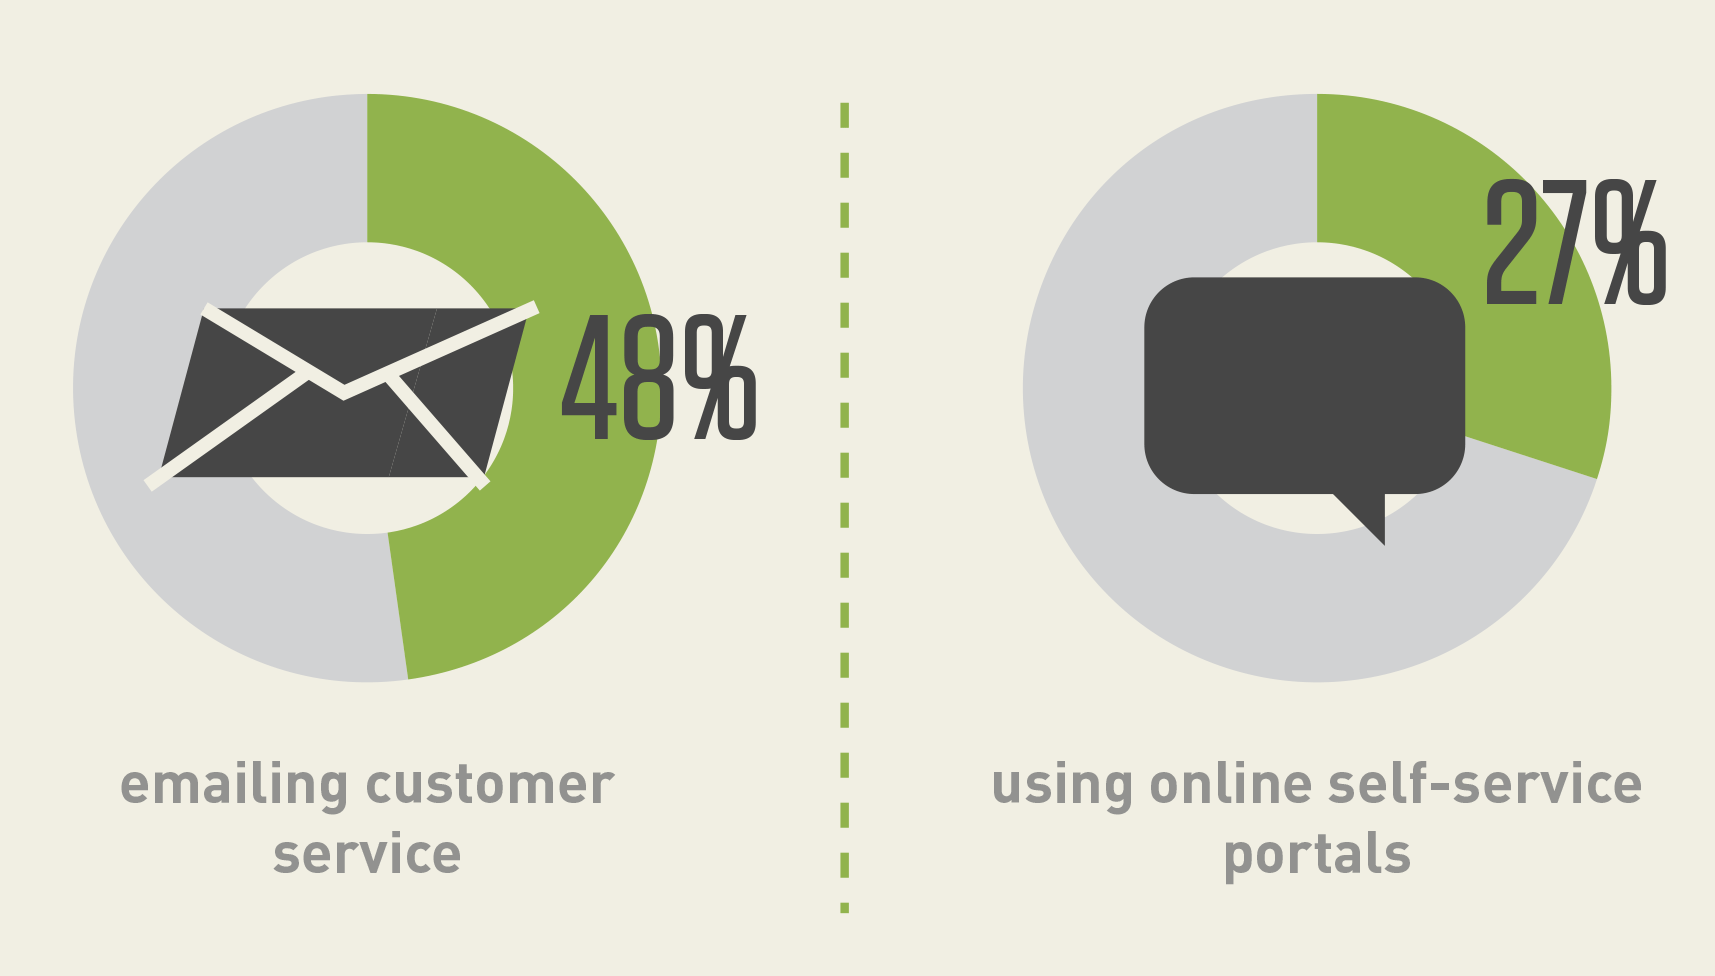 Bridging the Gap: Customer Service Omnichannel Survey